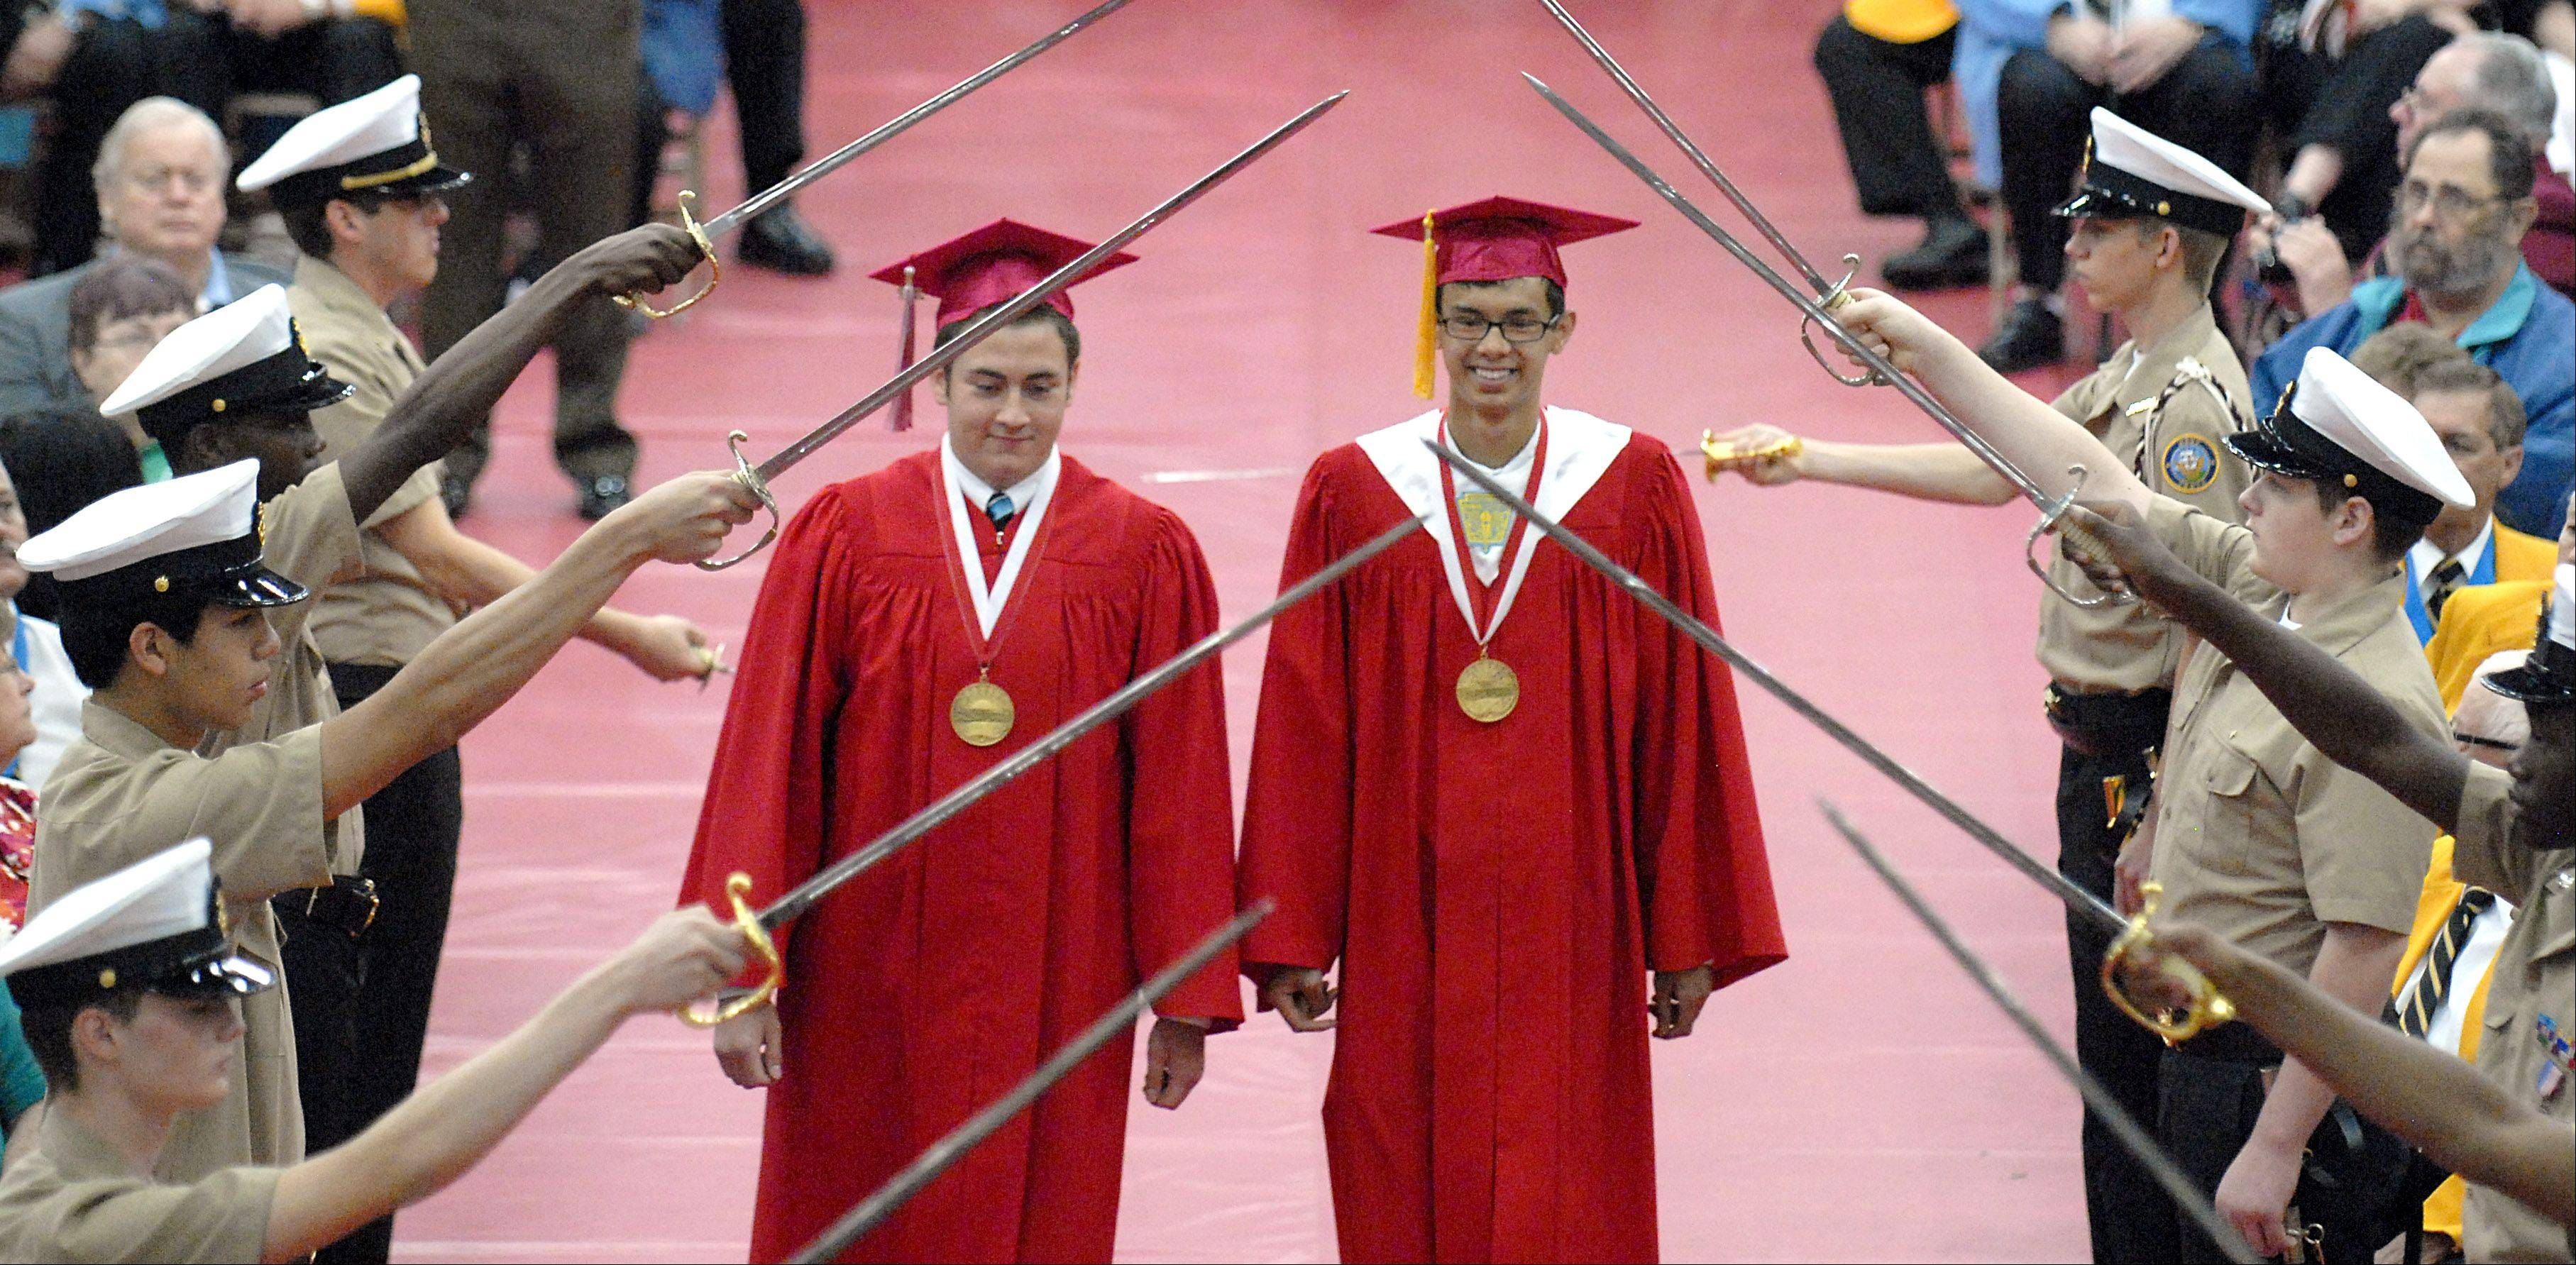 Salutatorian Mason Rueger of Bloomington, left, and valedictorian James Ranum of Campbell, CA are the first grads to walk to the stage for their graduation from Mooseheart High School in Batavia on Saturday, June 2. The class of 2012 had 16 graduates.